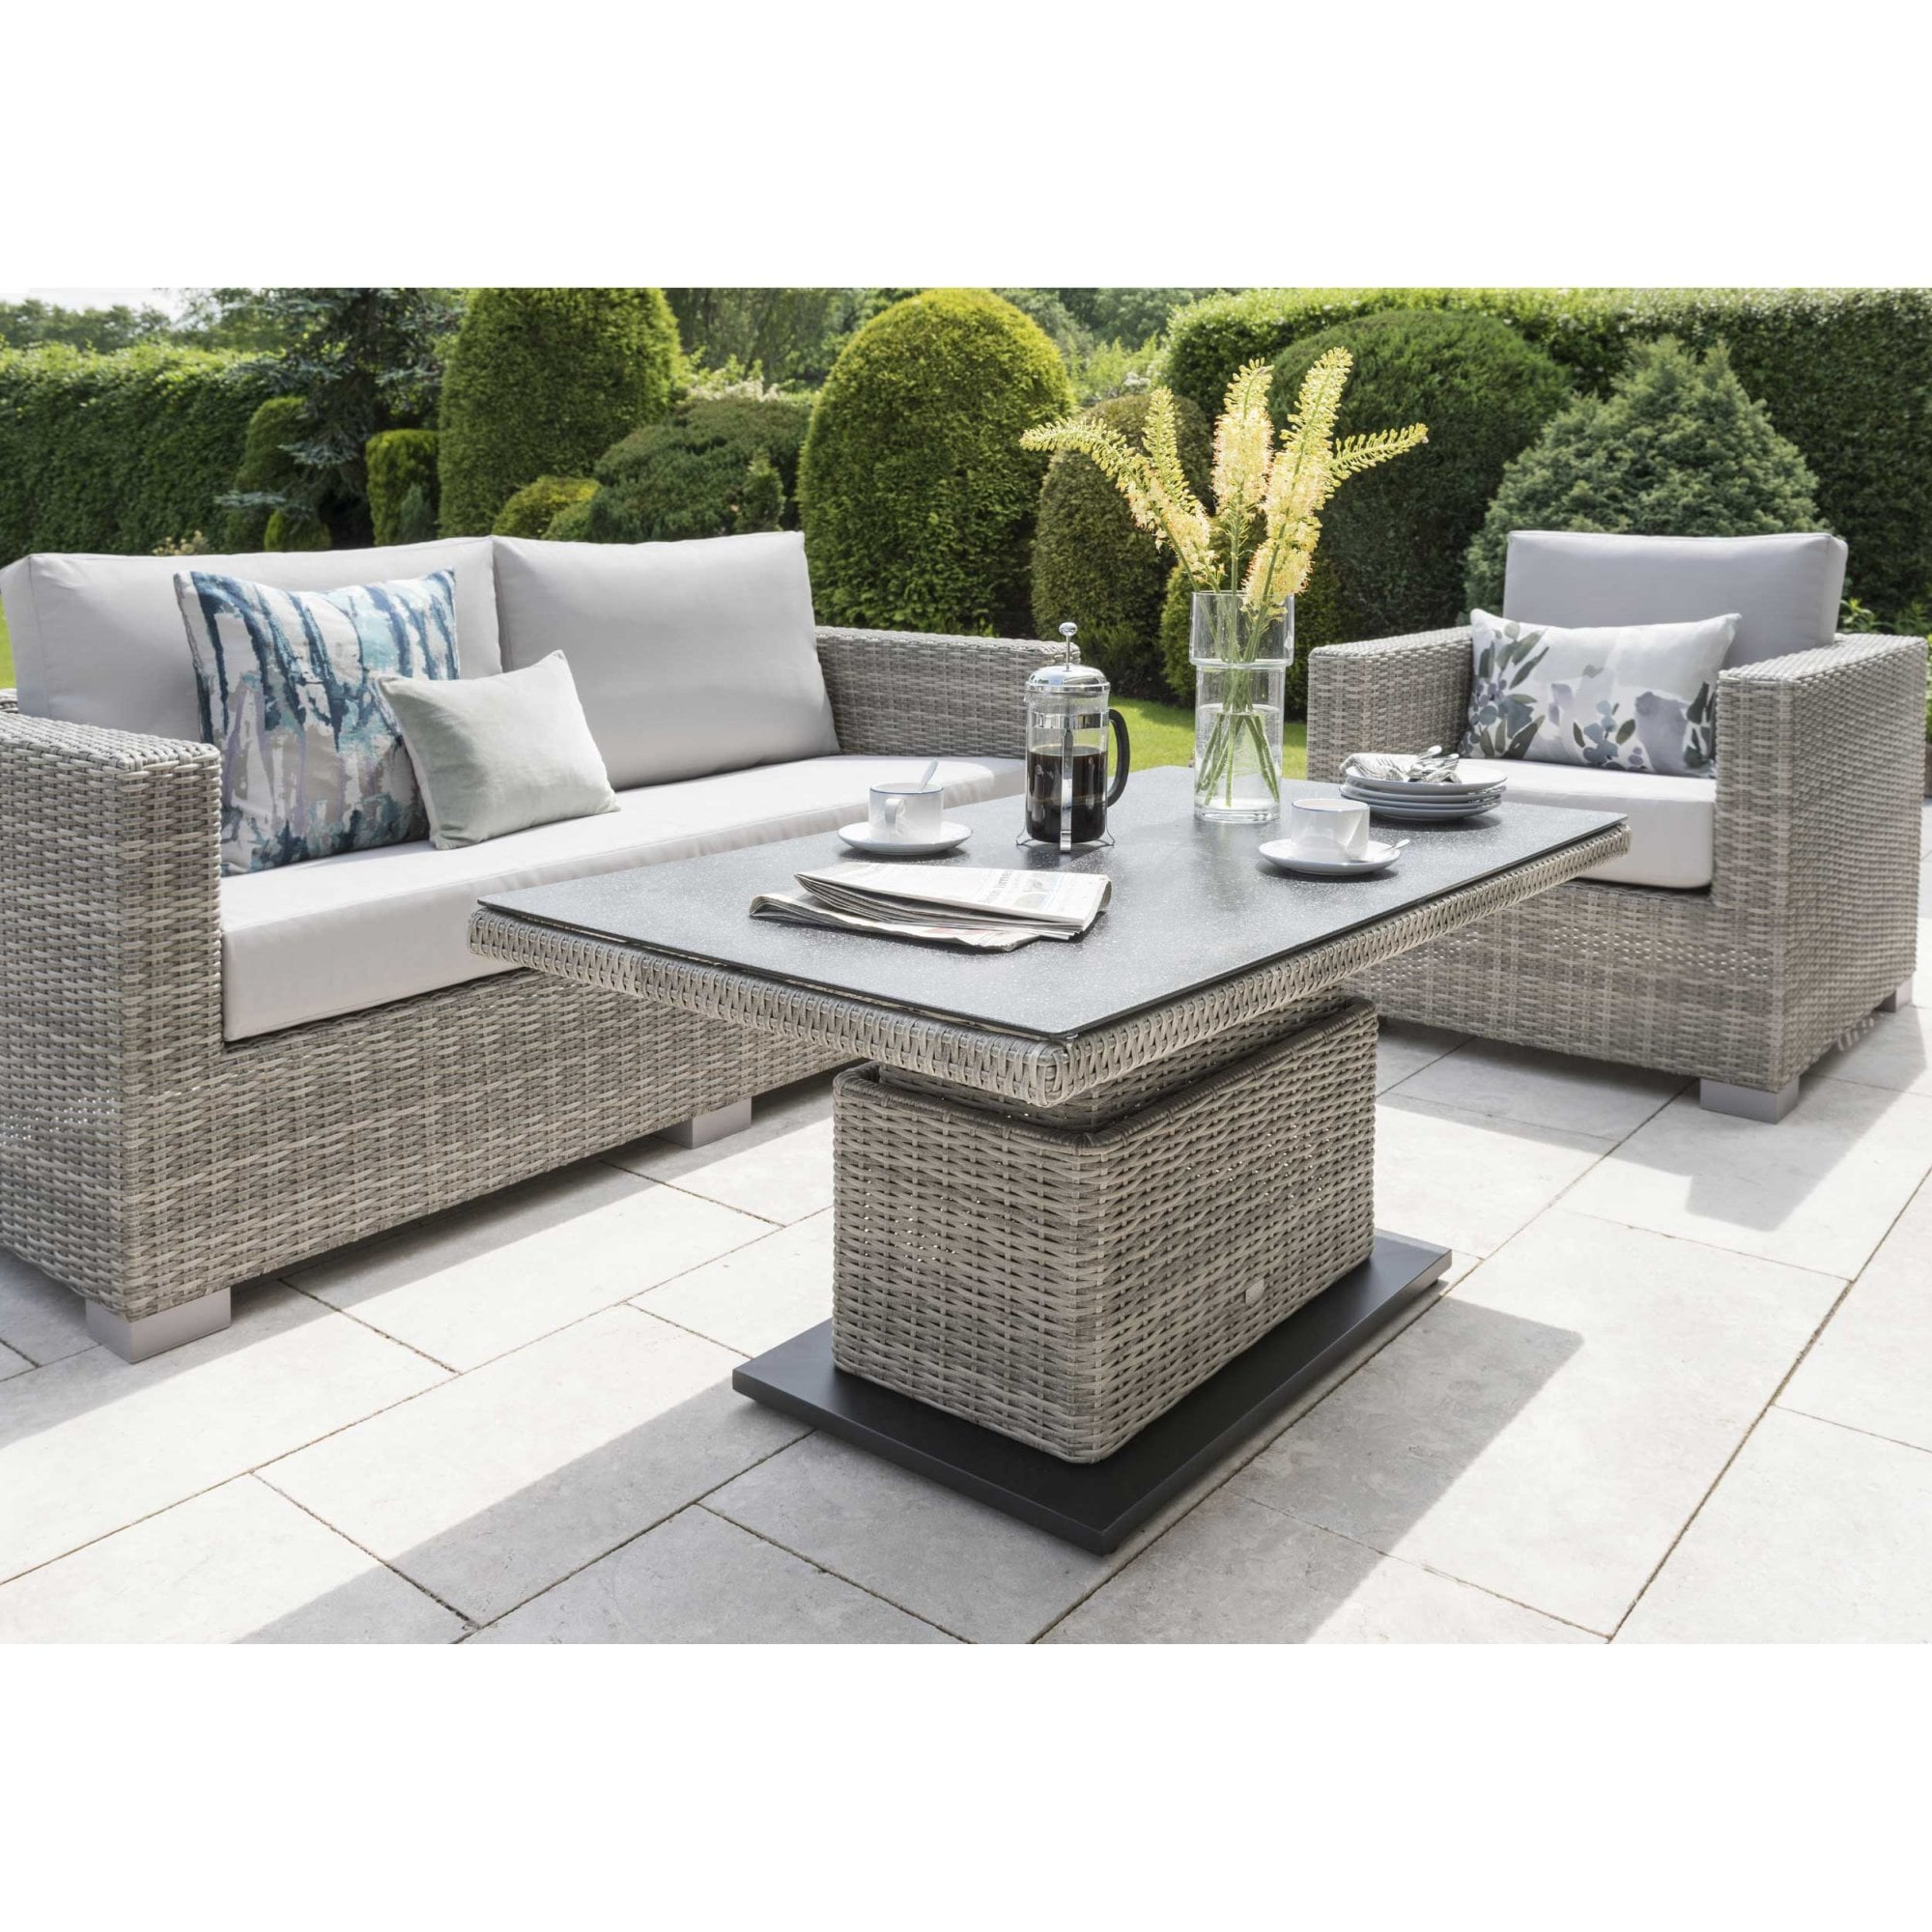 Norfolk Leisure Life Aya Sofa Set